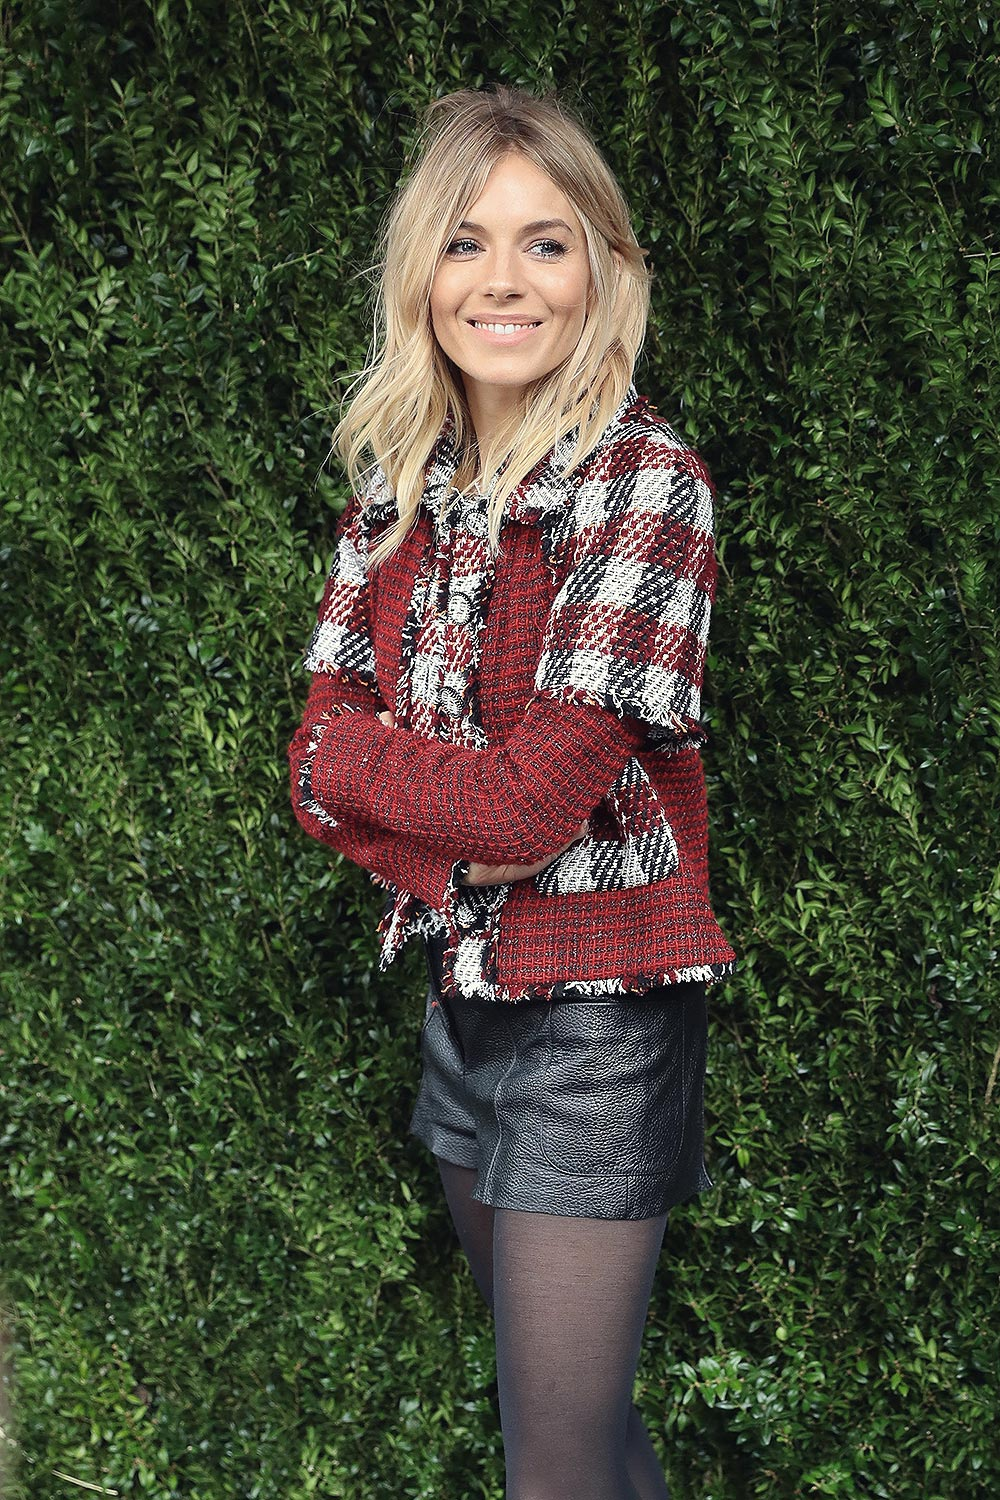 Sienna Miller attends The Tribeca Chanel Women's Filmmaker Program Luncheon